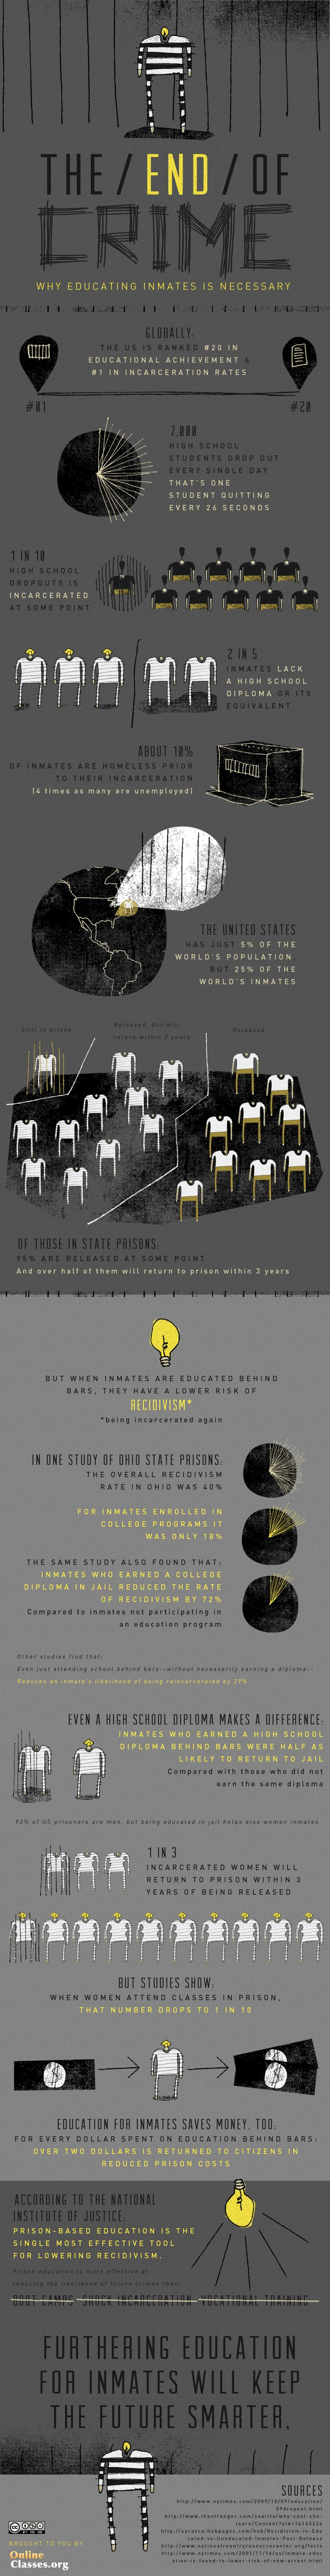 The End of Crime Infographic  http://www.forgetthebox.net/mag/infographic-the-end-of-crime.php#